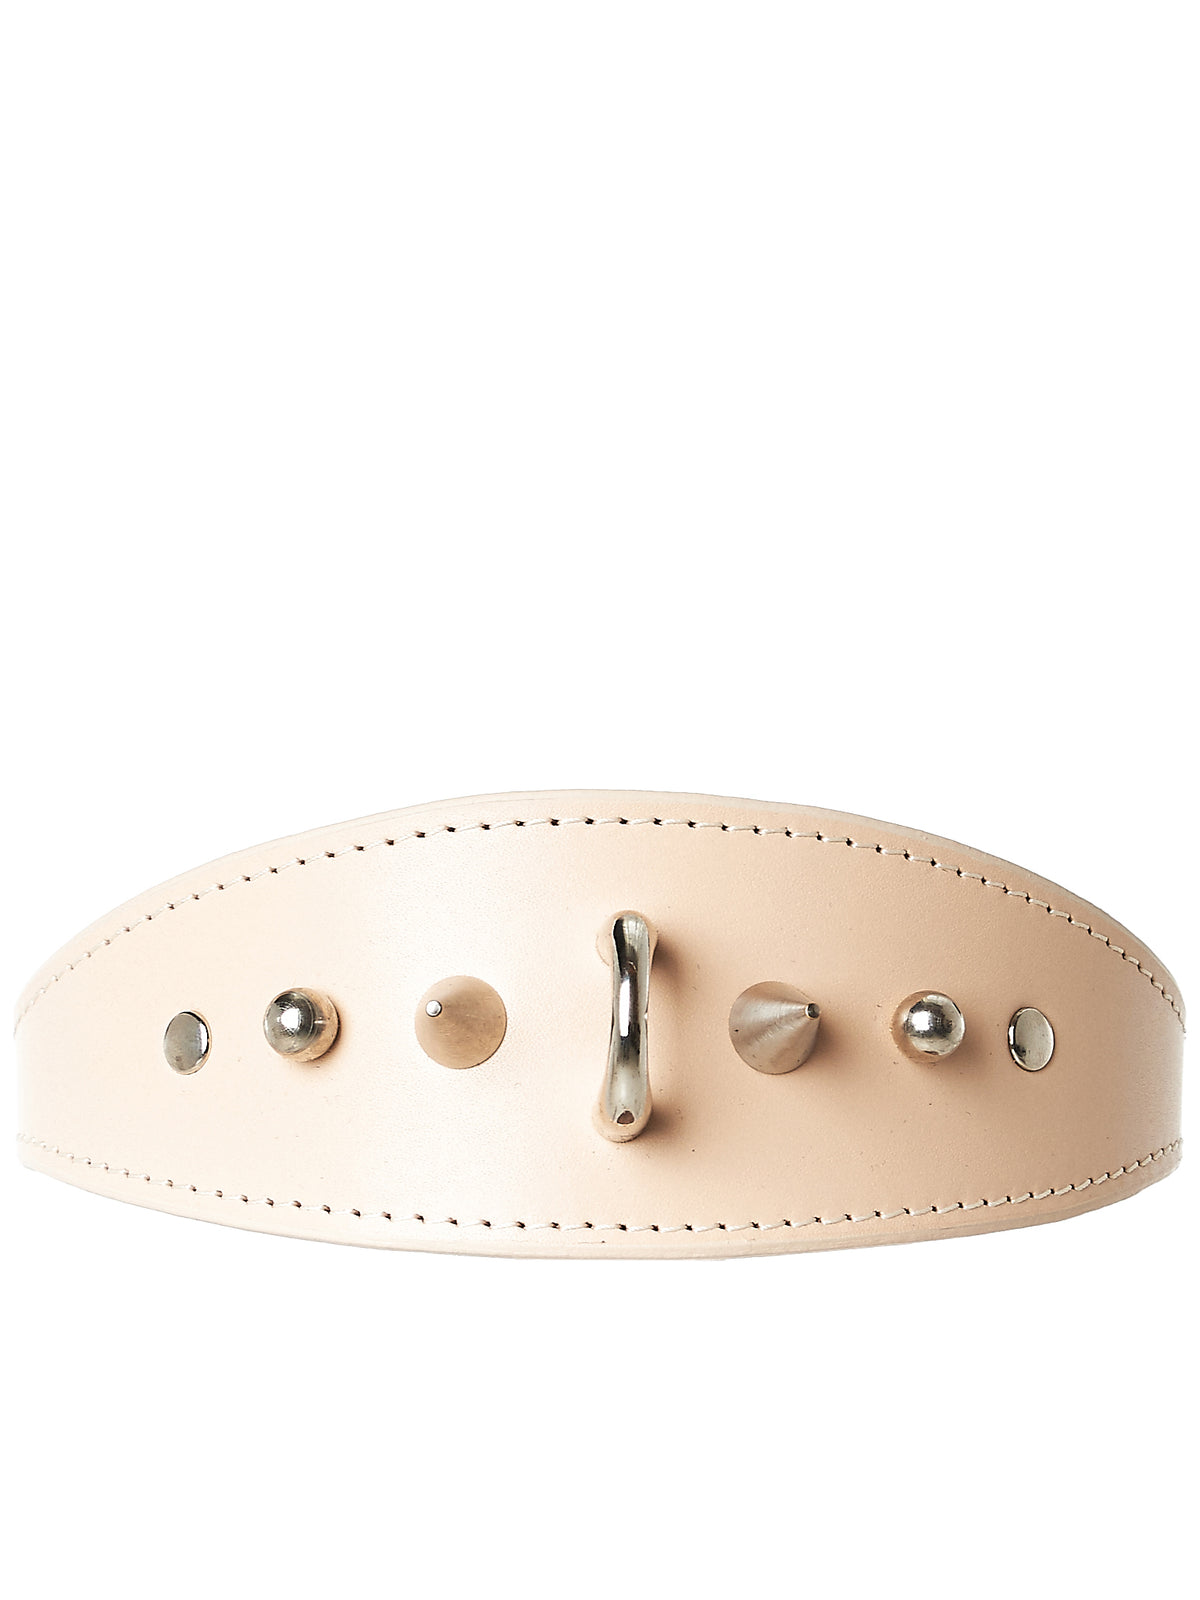 Studded Leather Choker (AW17-CLR-STUD-NUDE)